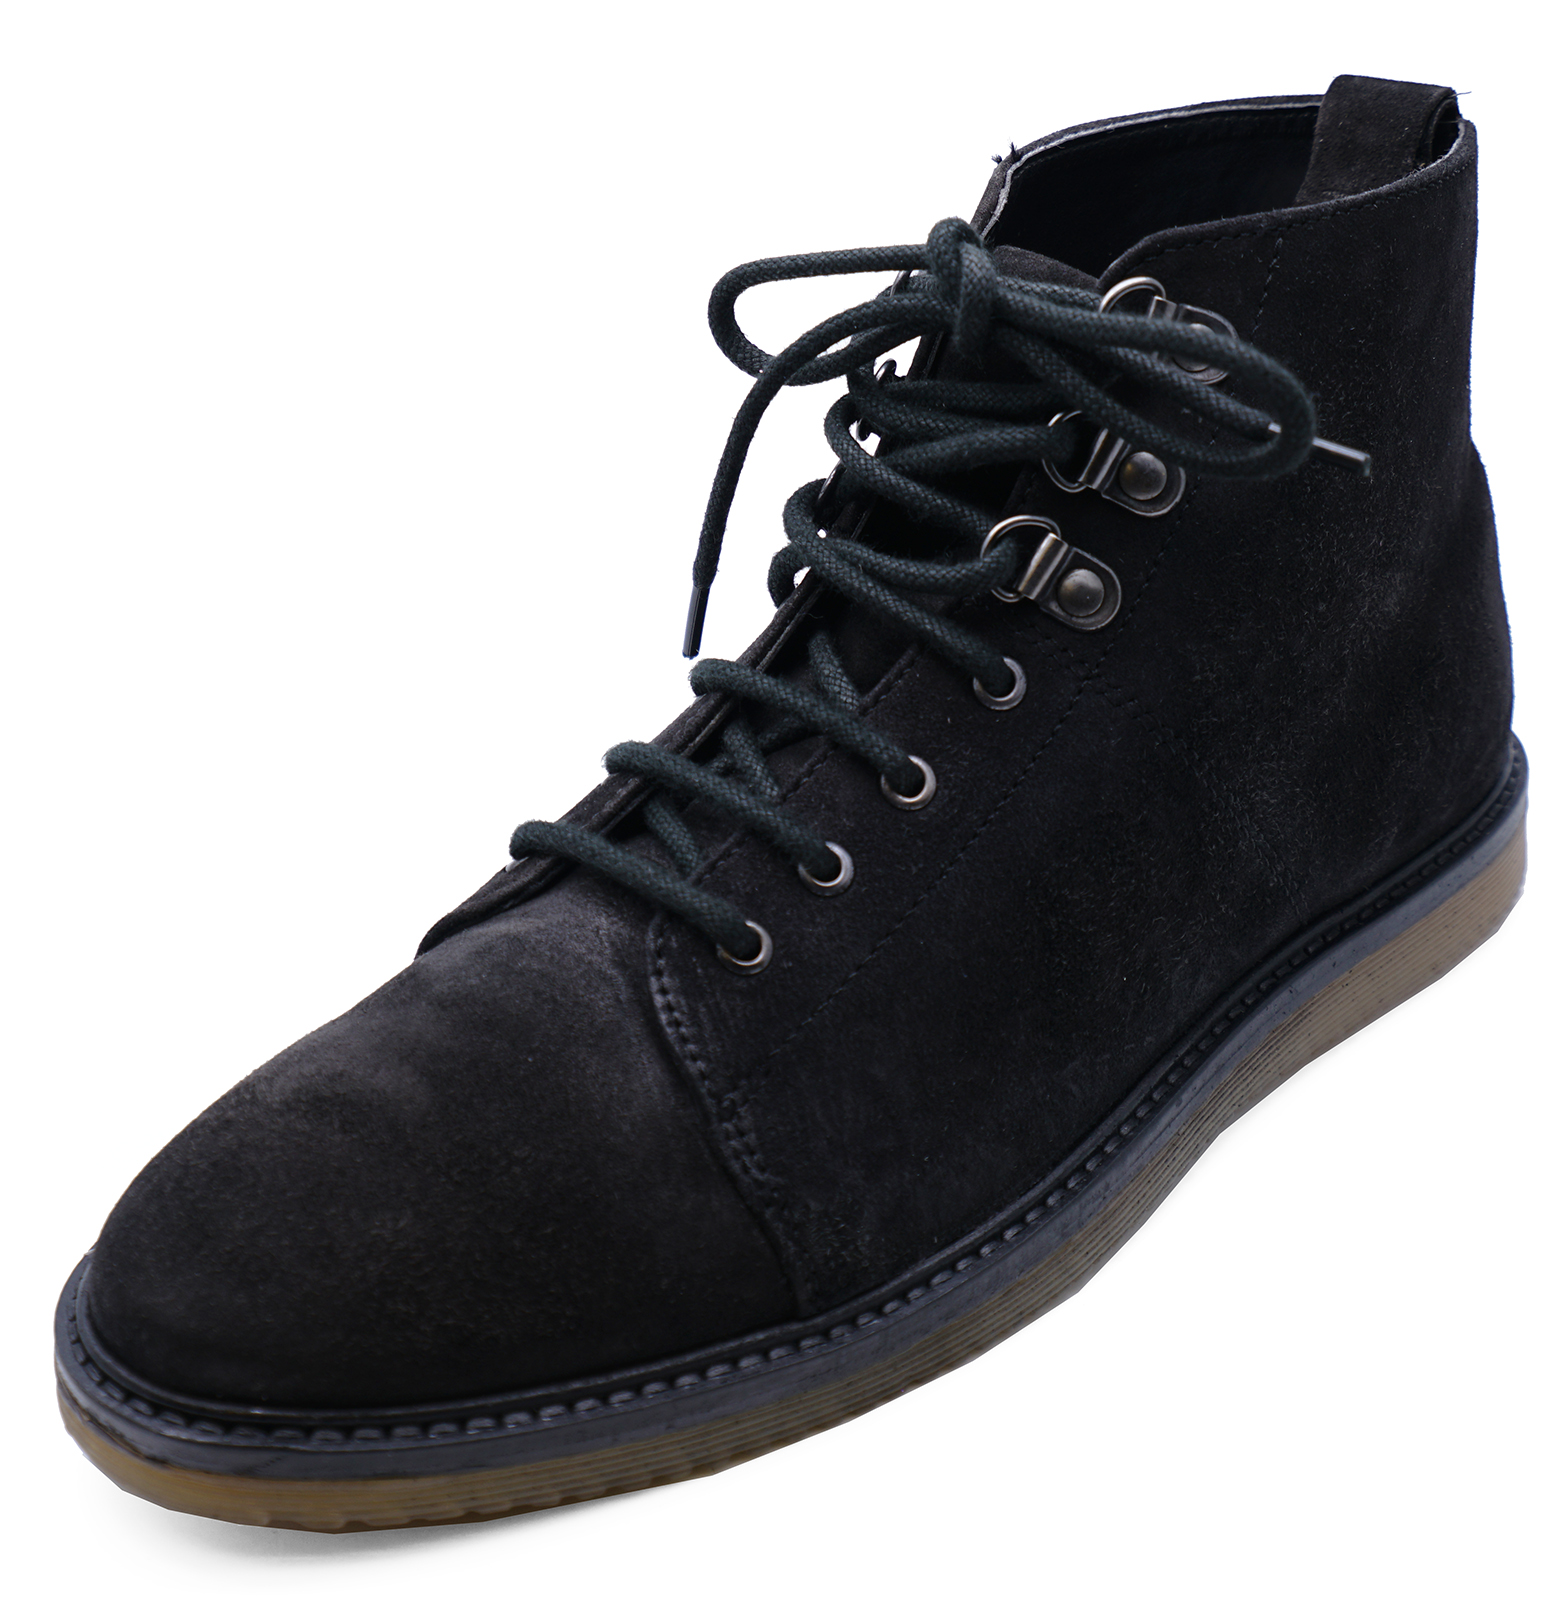 Mens Black Leather Lace Up Dealer Smart Casual Ankle Boots Work